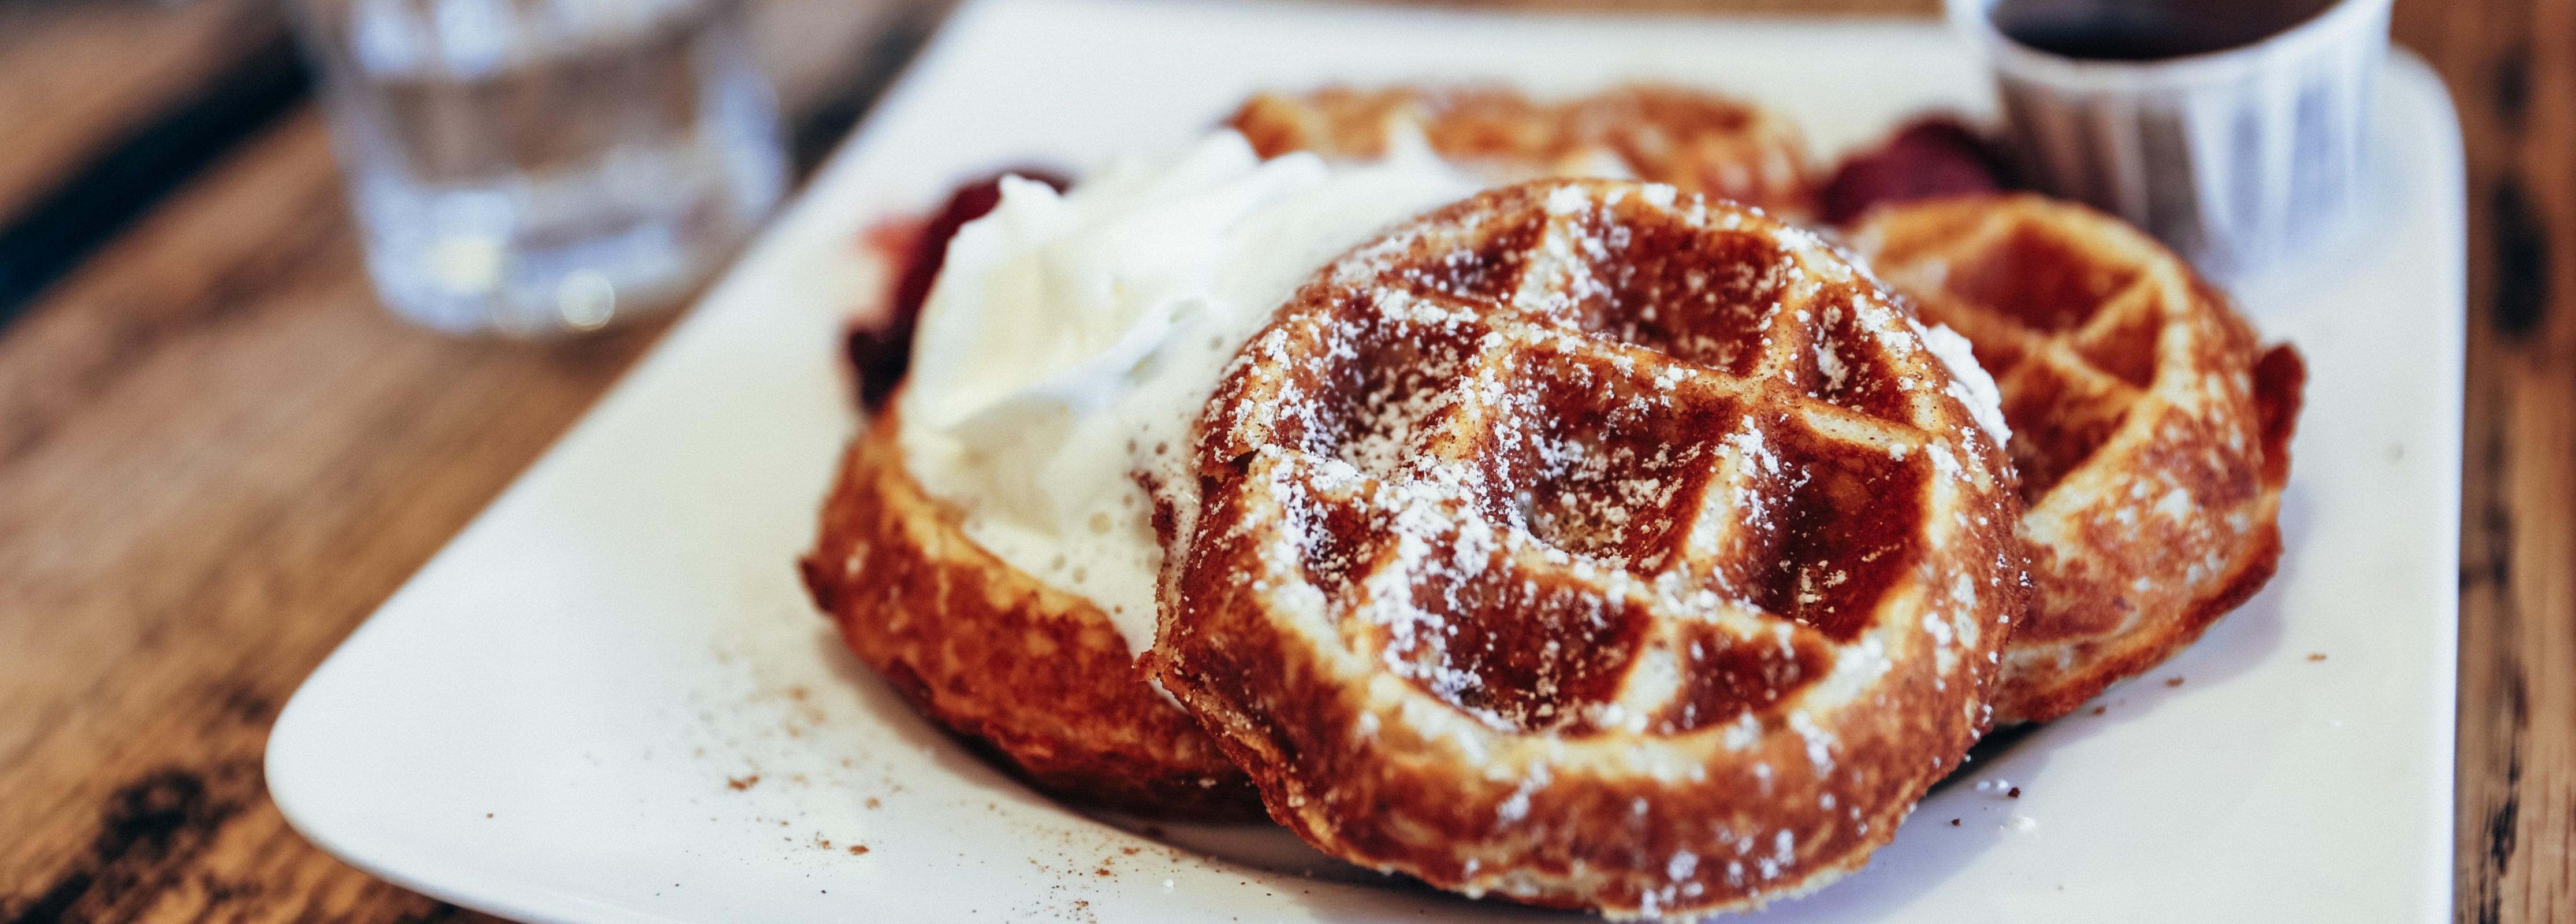 waffles-with-whipped-cream